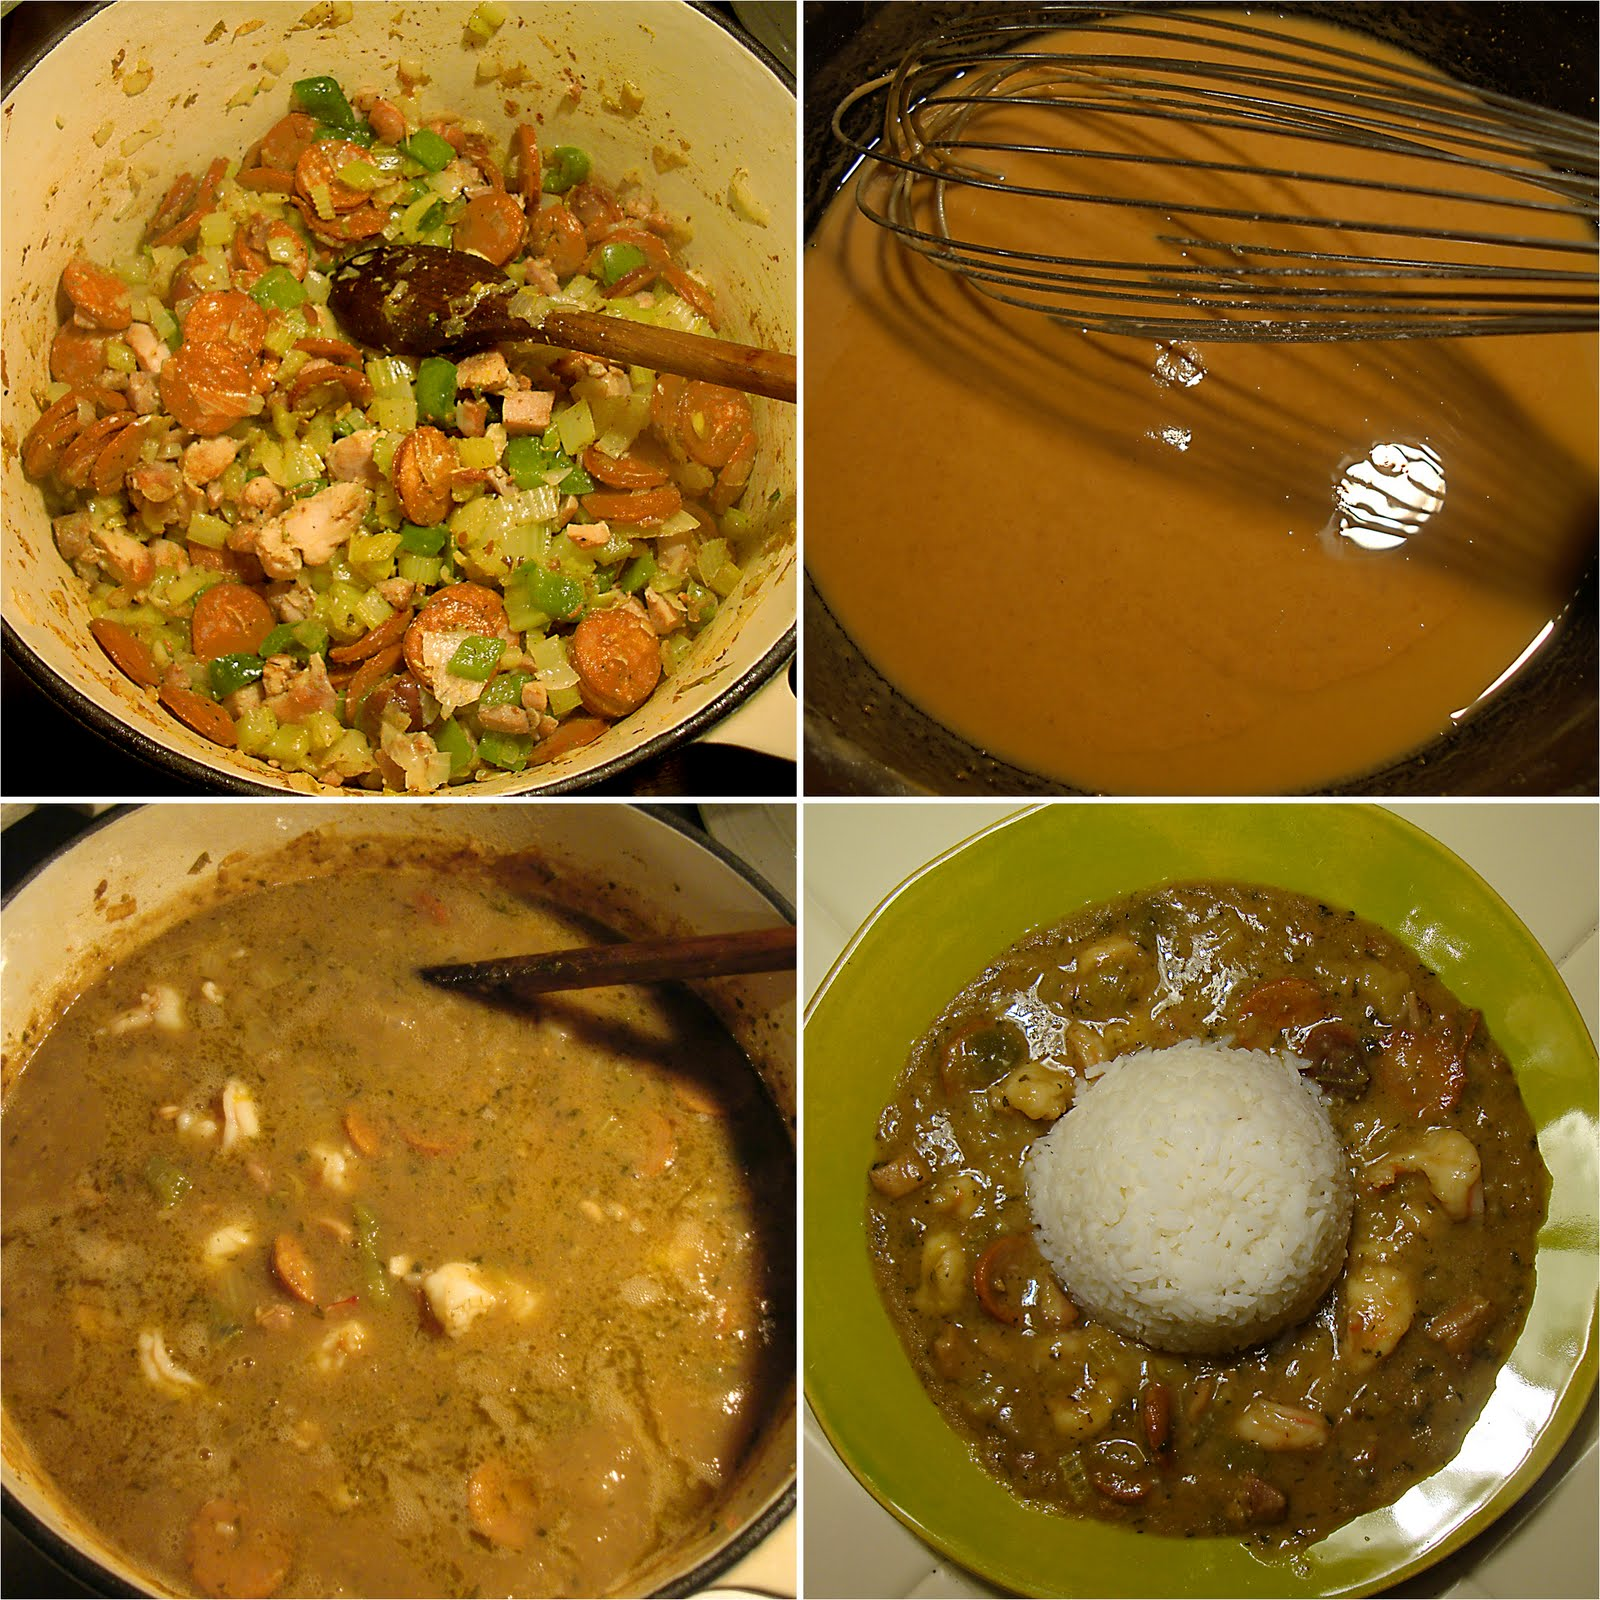 BBQDad1: Chicken & Shrimp Gumbo with Andouille Sausage